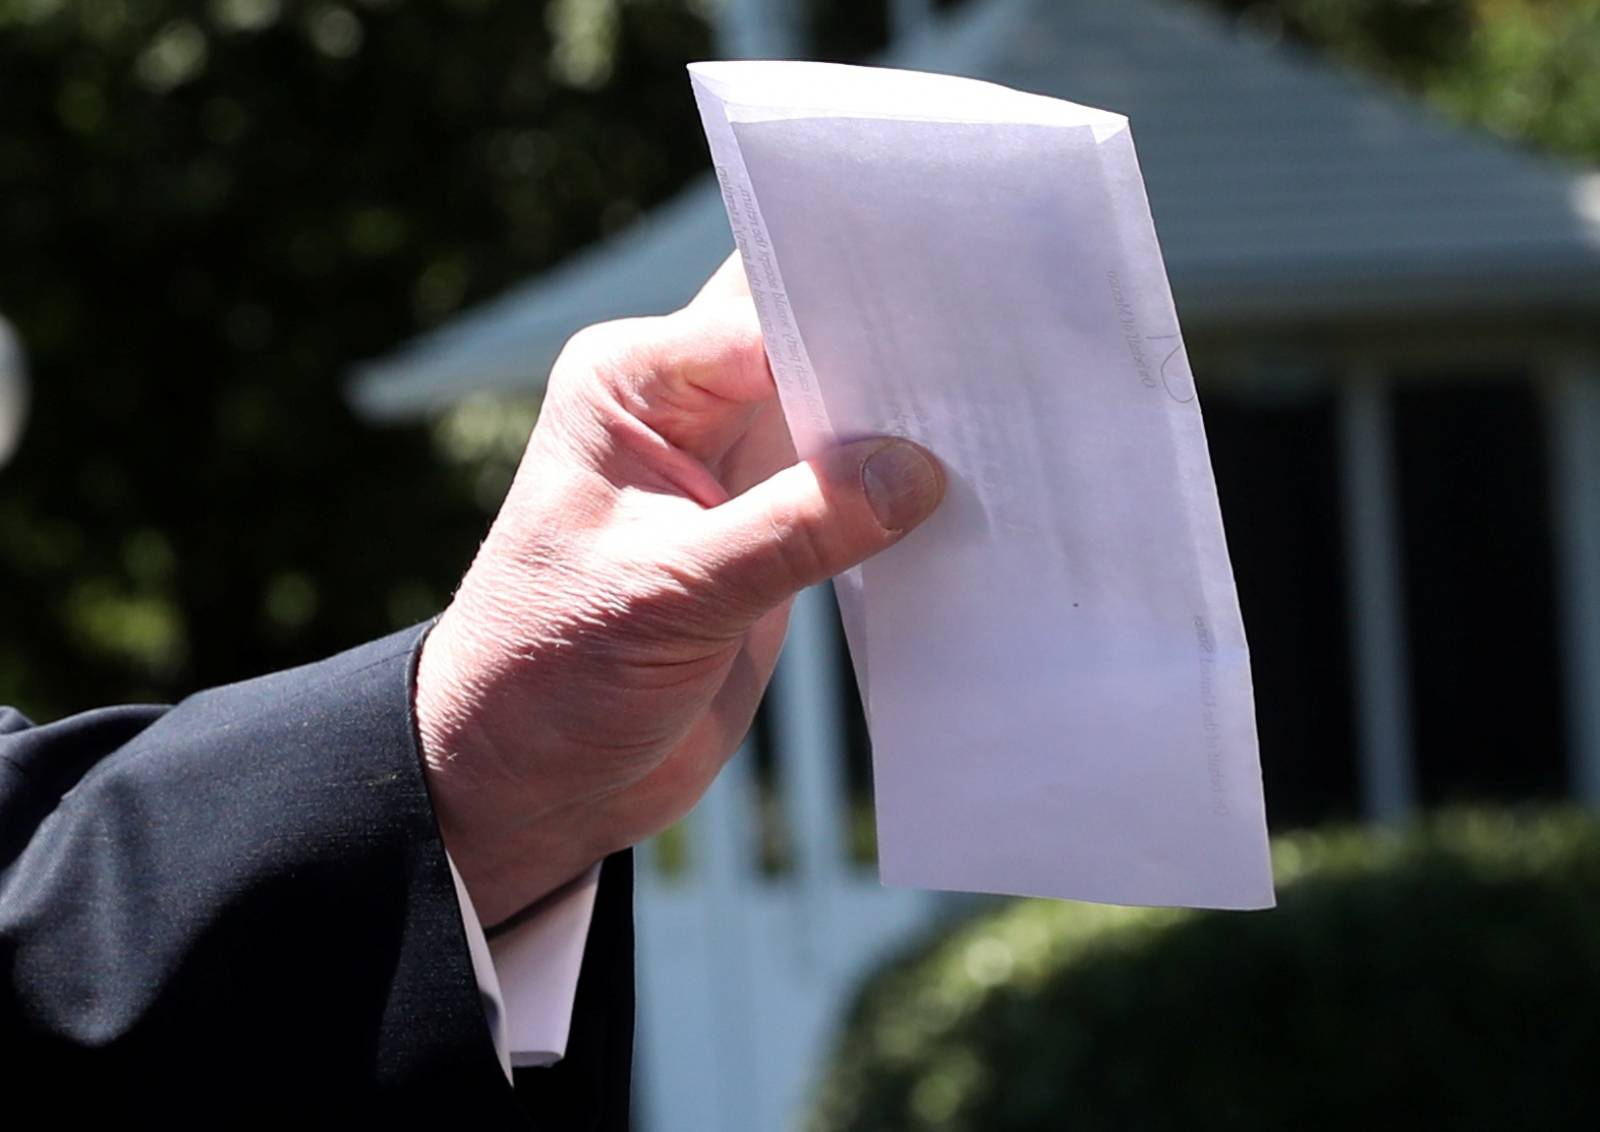 U.S. President Trump holds copy of regional asylum plan as he departs for travel to Iowa from the White House in Washington